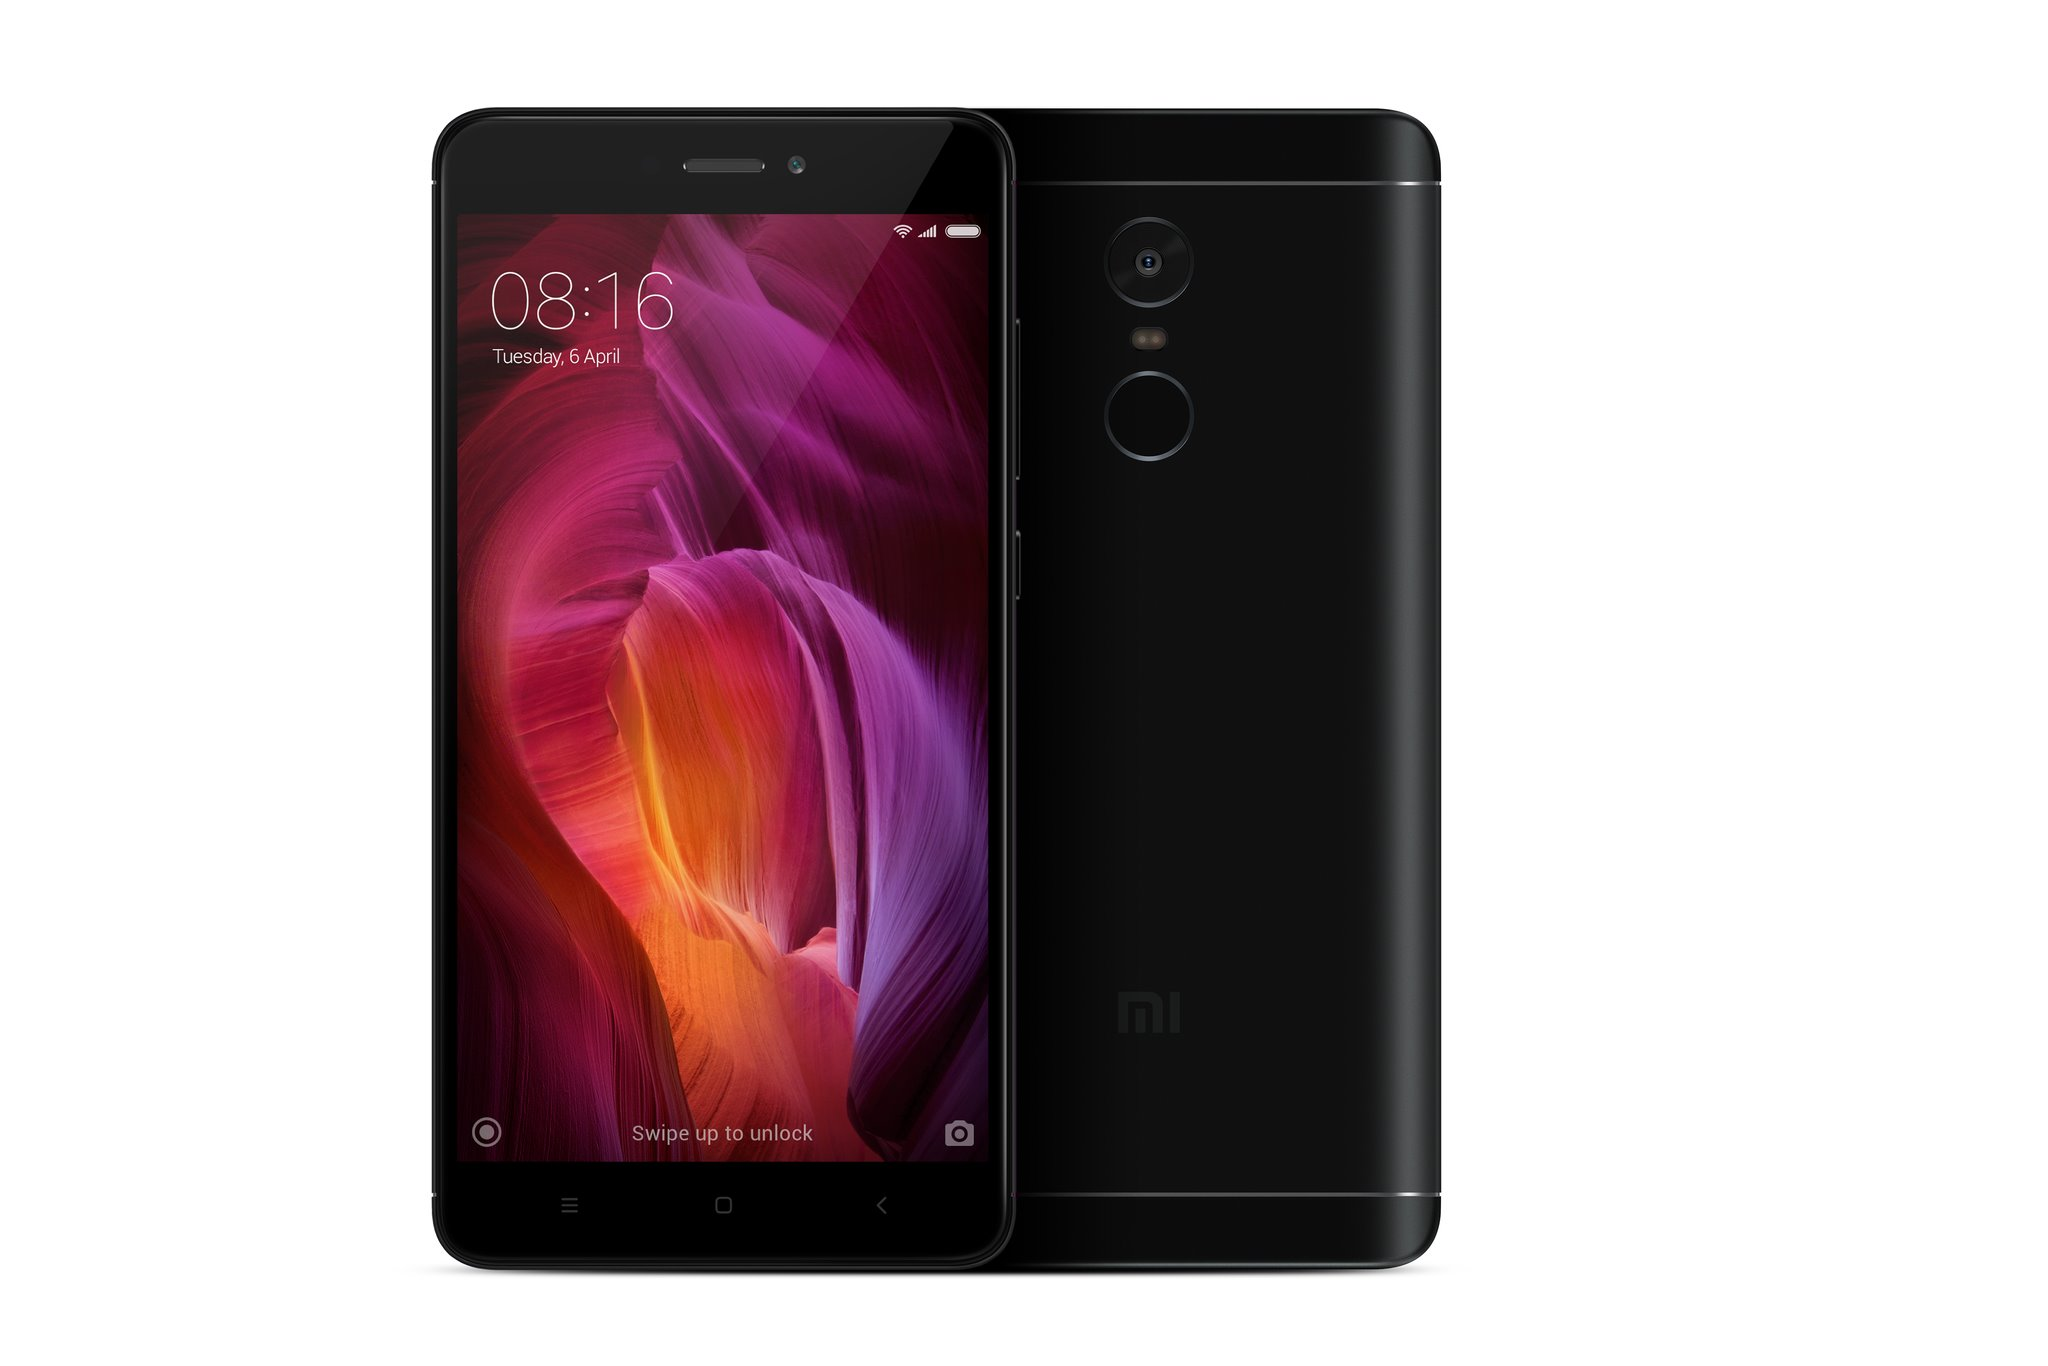 xiaomi redmi note 4 global 4gb 64gb black cz lte xrn4b464 t s bohemia. Black Bedroom Furniture Sets. Home Design Ideas